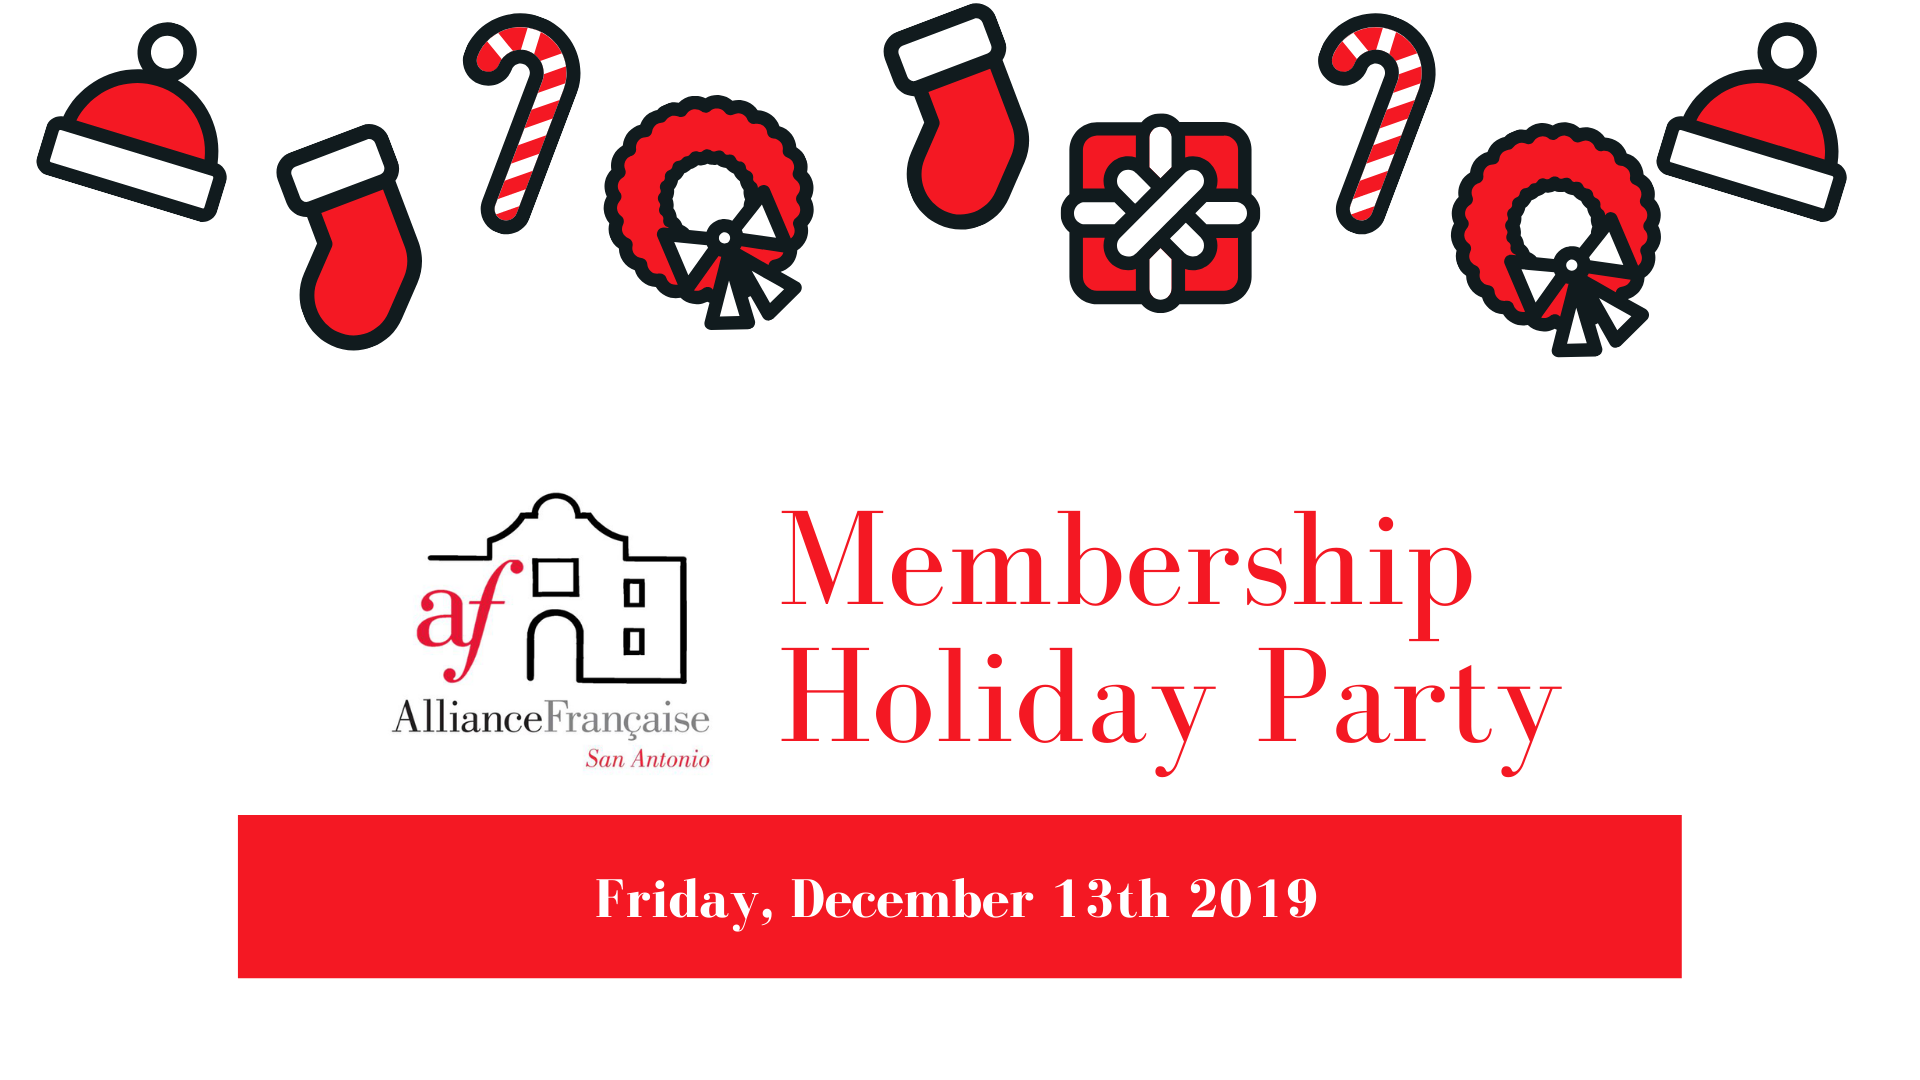 Membership Holiday Party Information